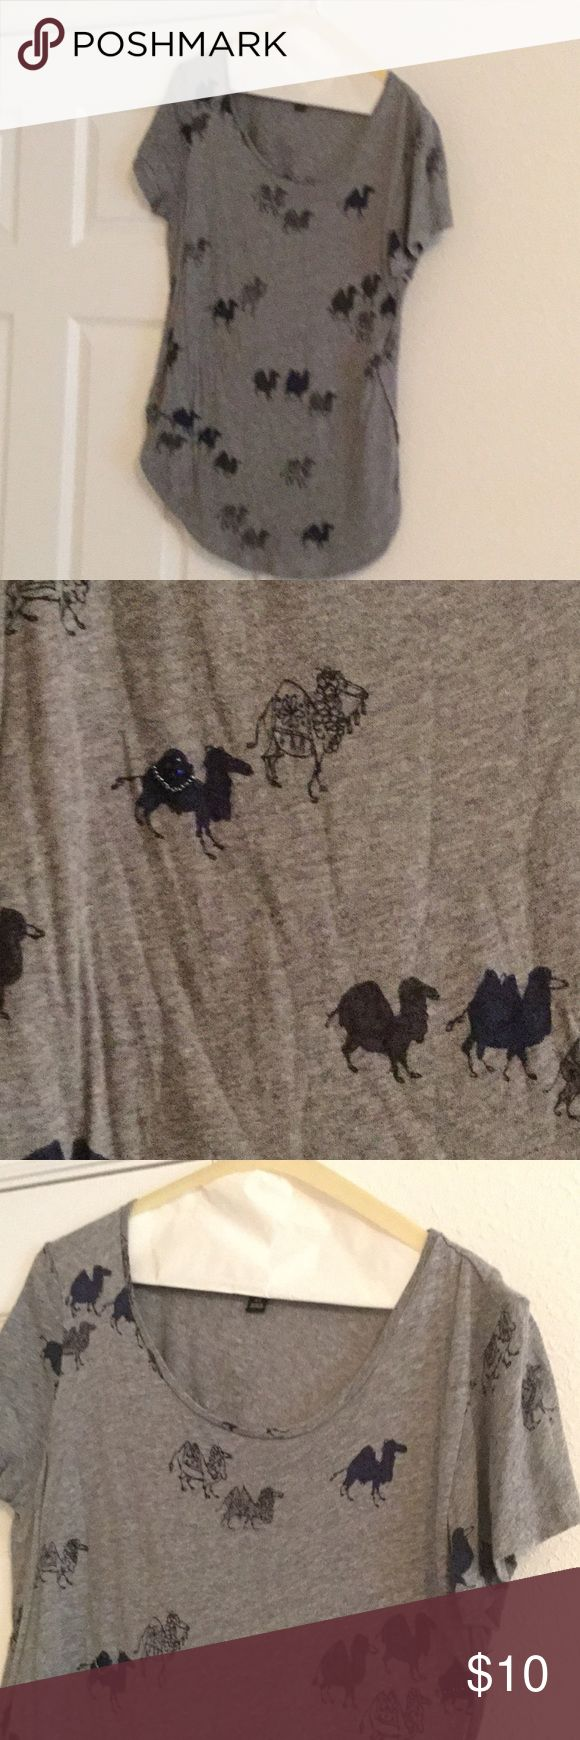 Gray Camel Shirt Gray Camel Shirt, some of the camels have sparkle details. Size XS LOFT Tops Tees - Short Sleeve